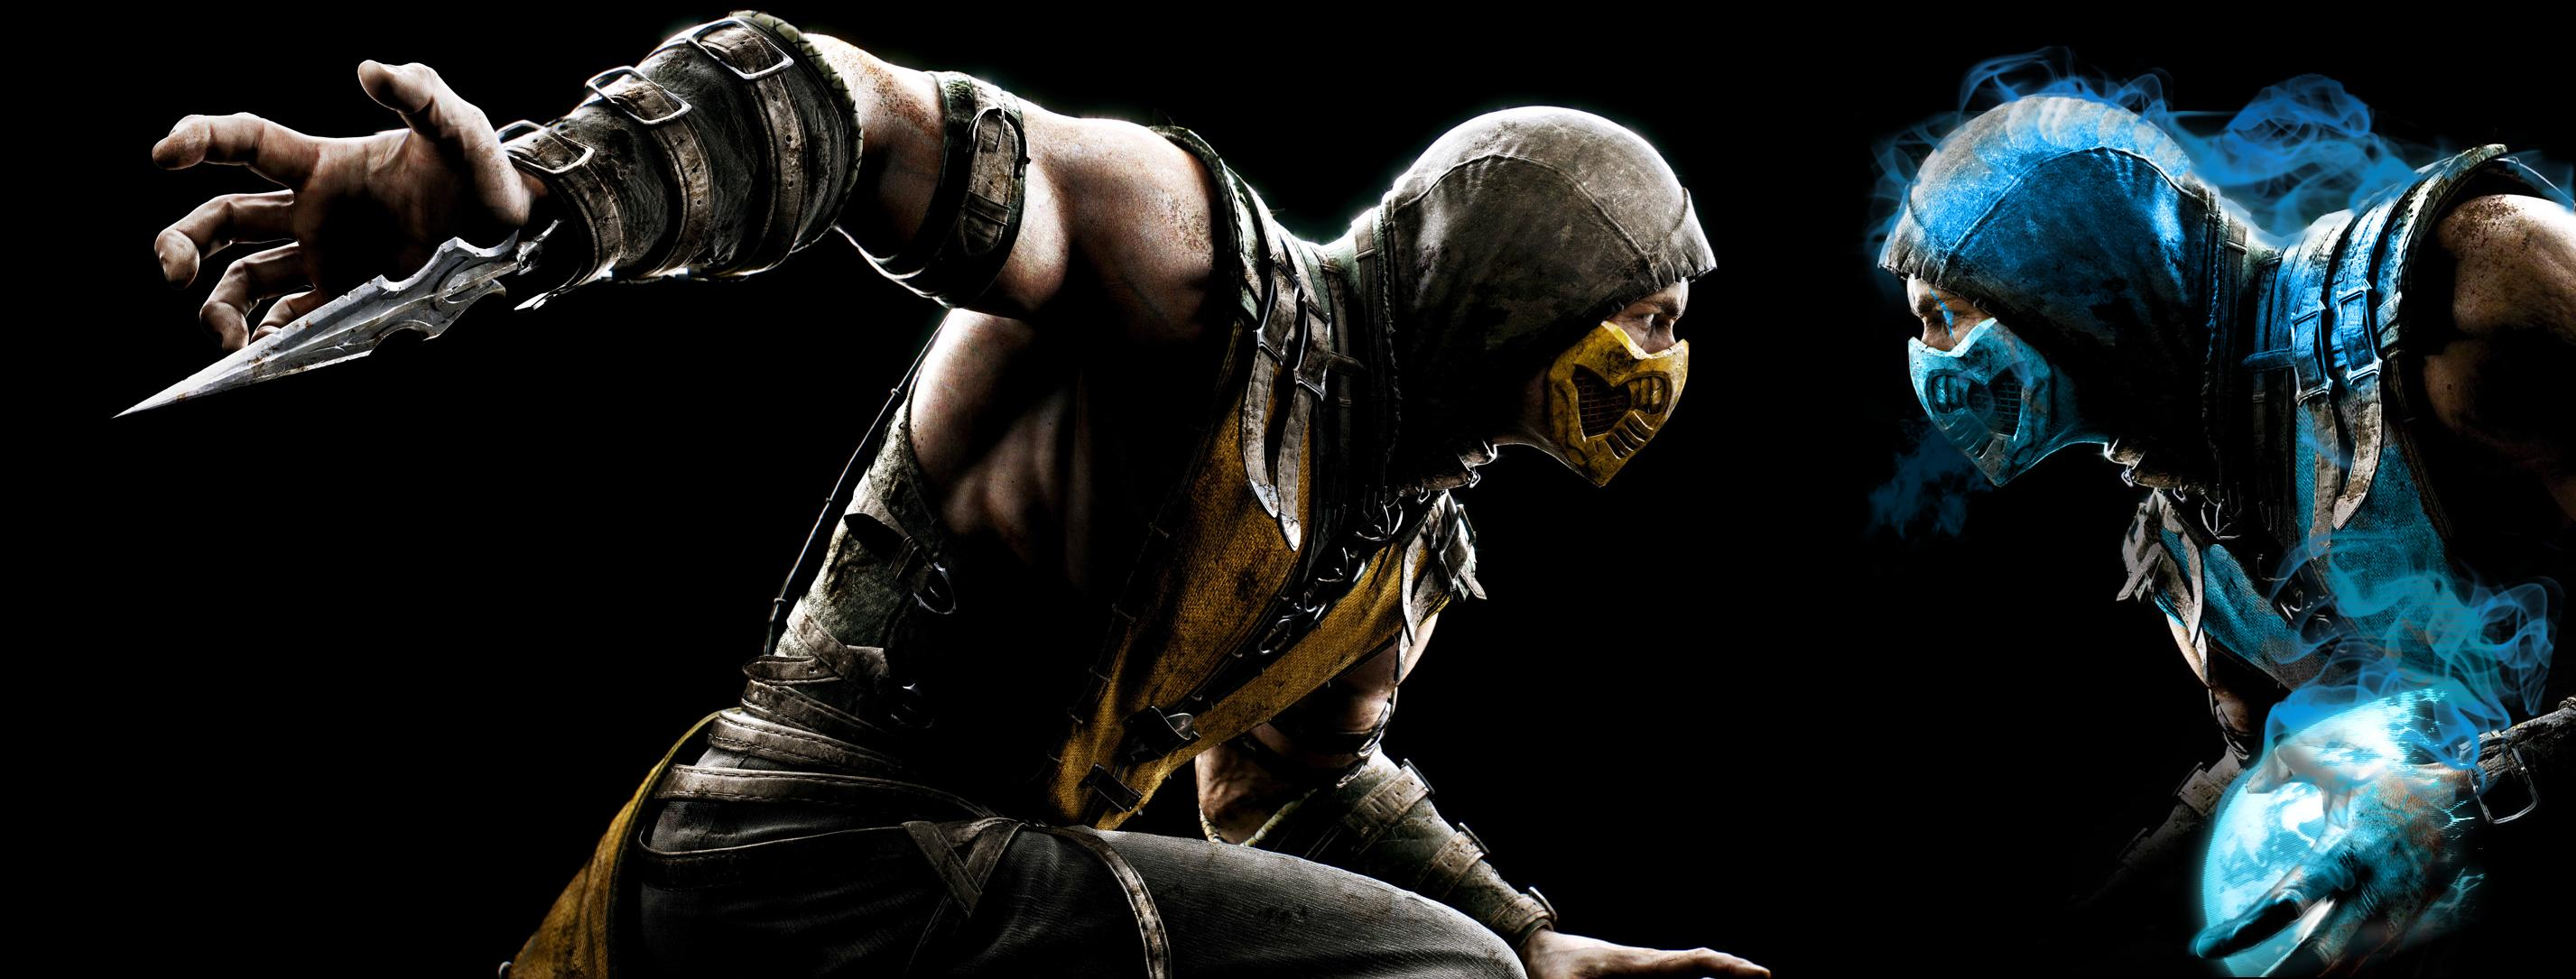 Mortal Kombat X   Scorpion vs Sub Zero by mkfan786 2854x1085